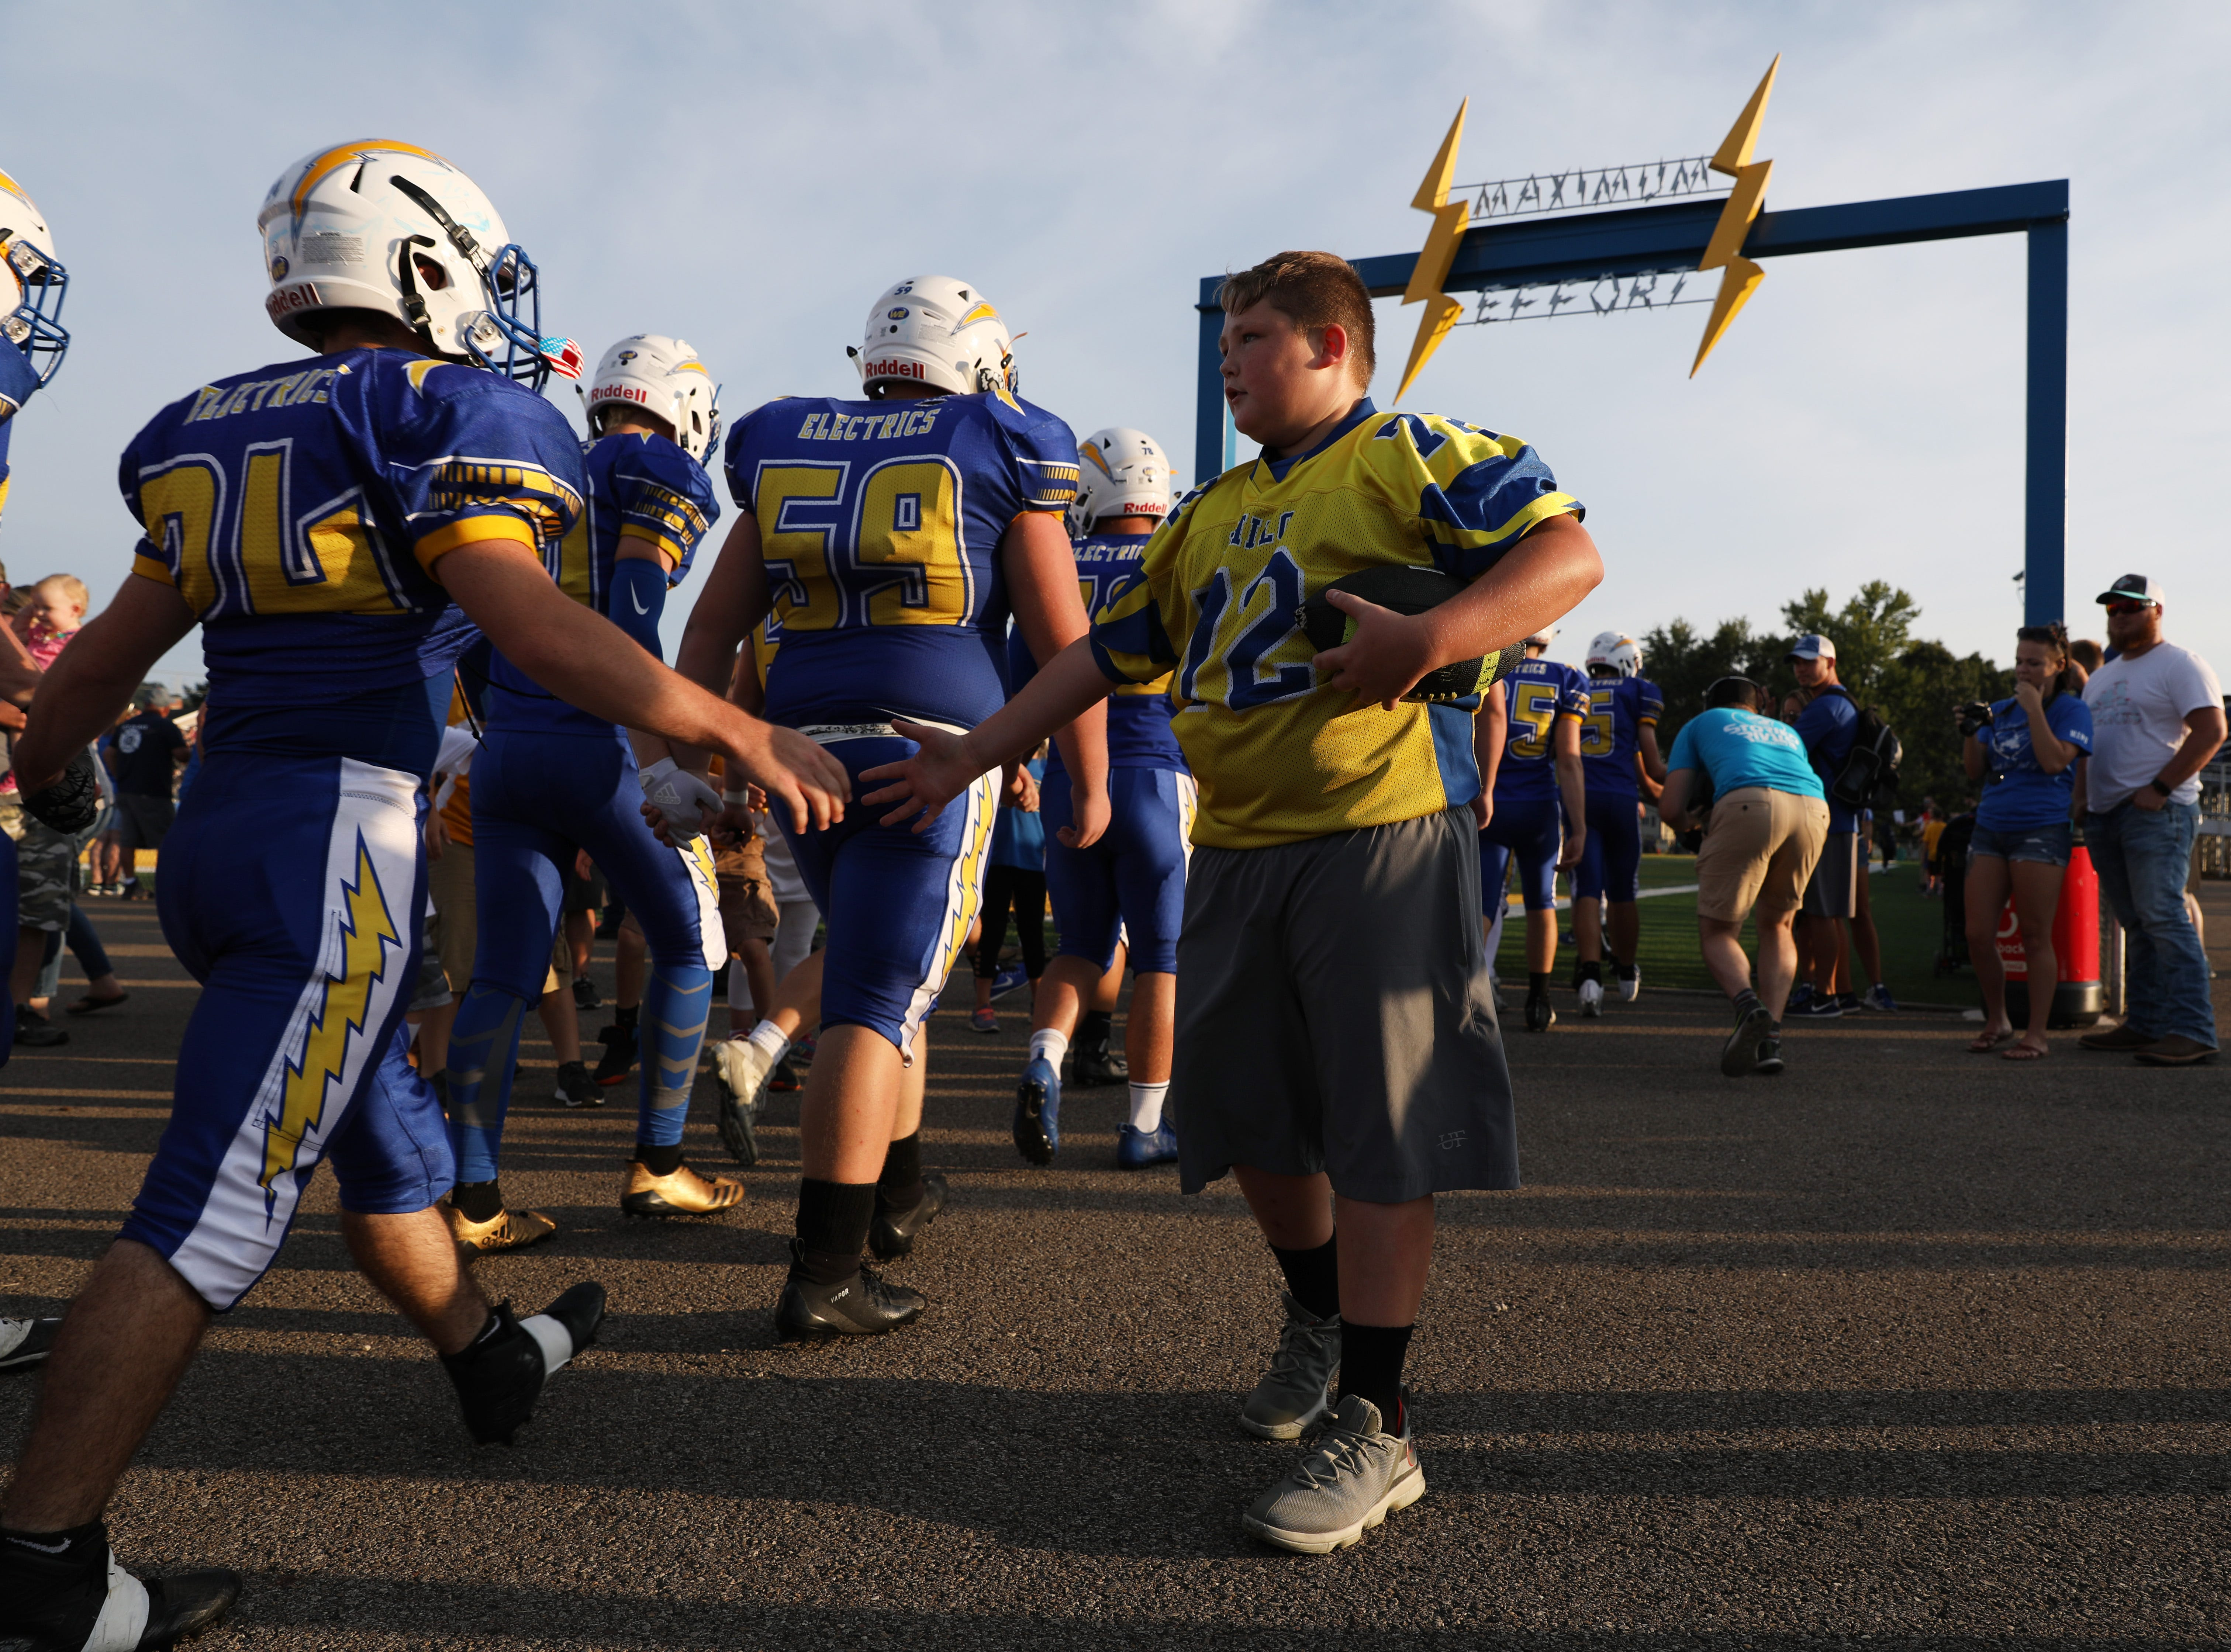 A youngster gets a high five as the Electrics take the field.